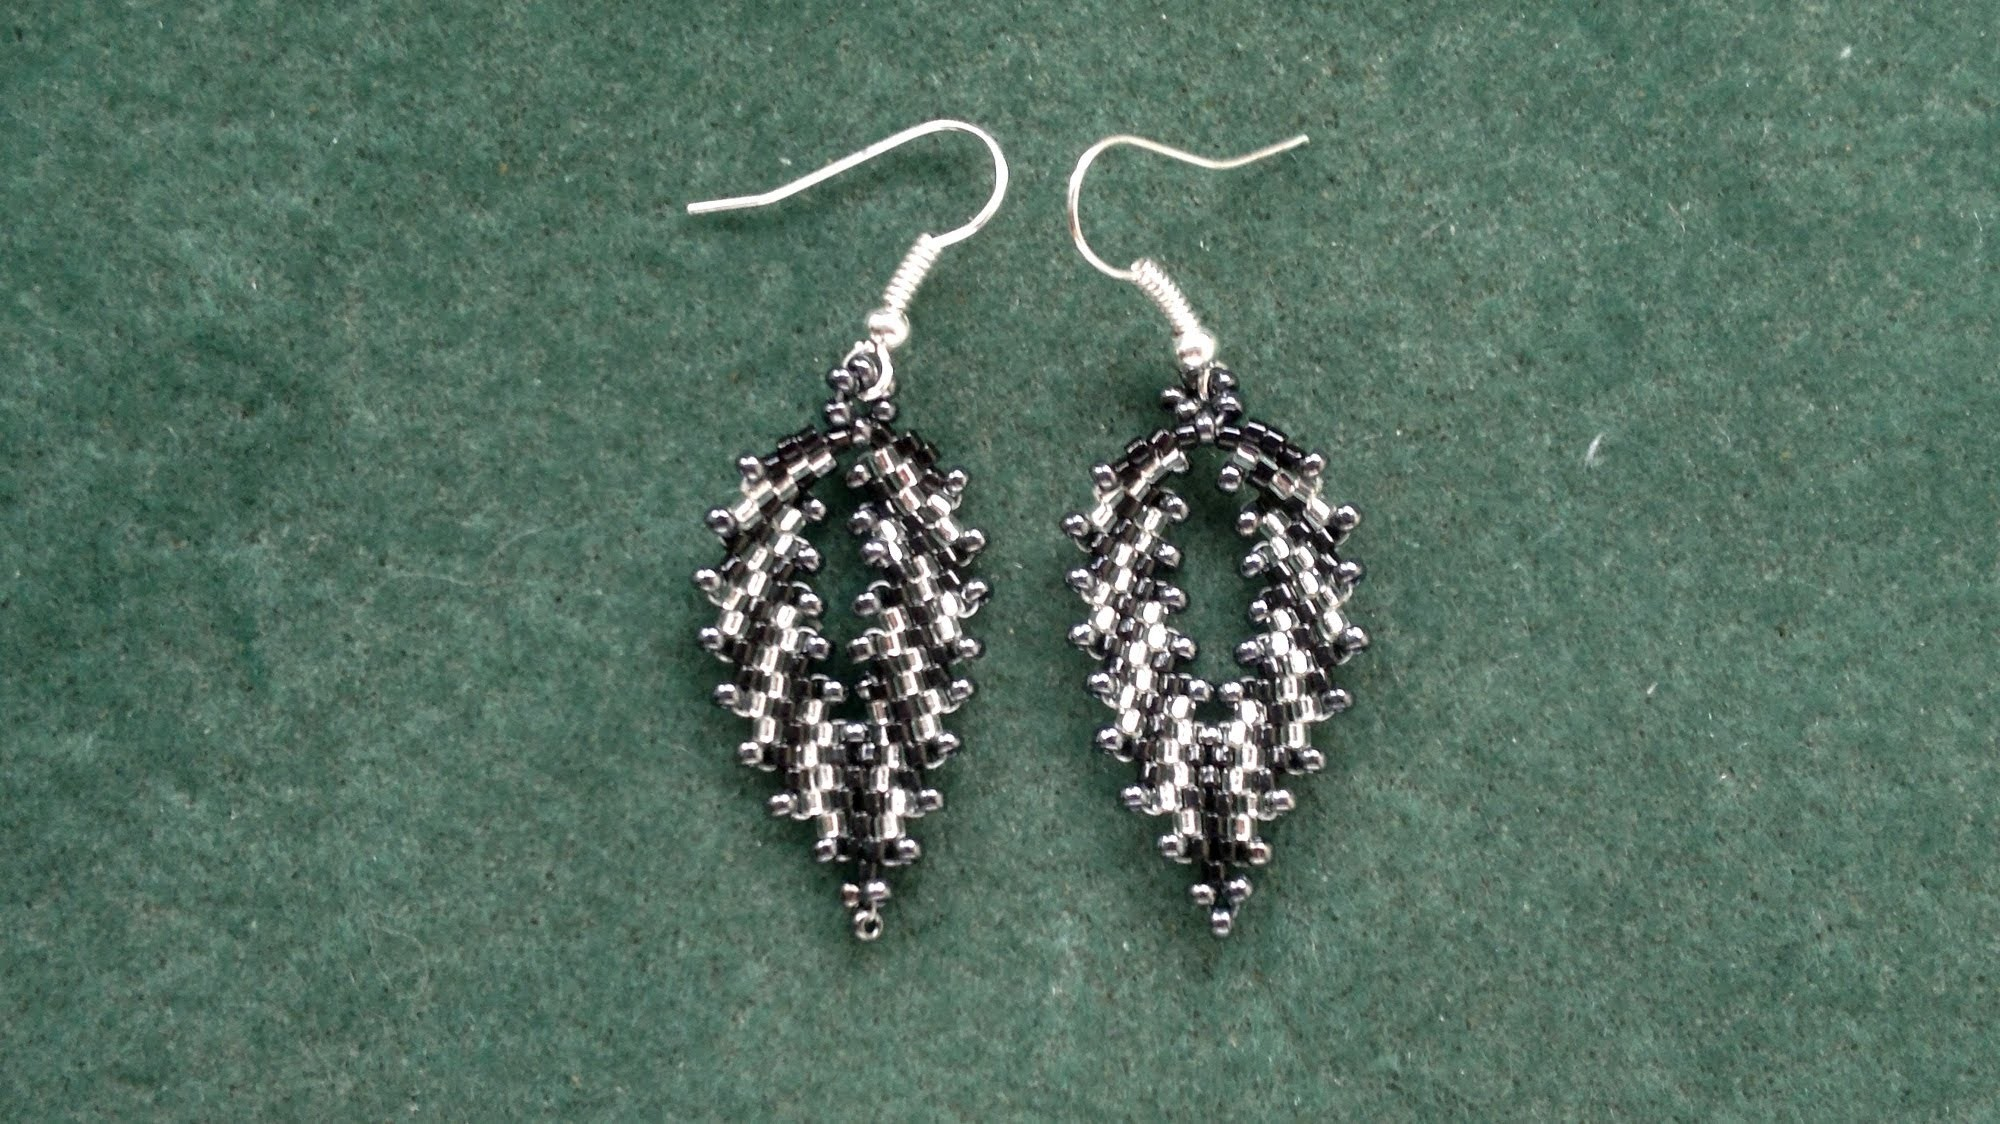 Beading4perfectionists : Russian leaf with delica beads earrings video version beading tutorial